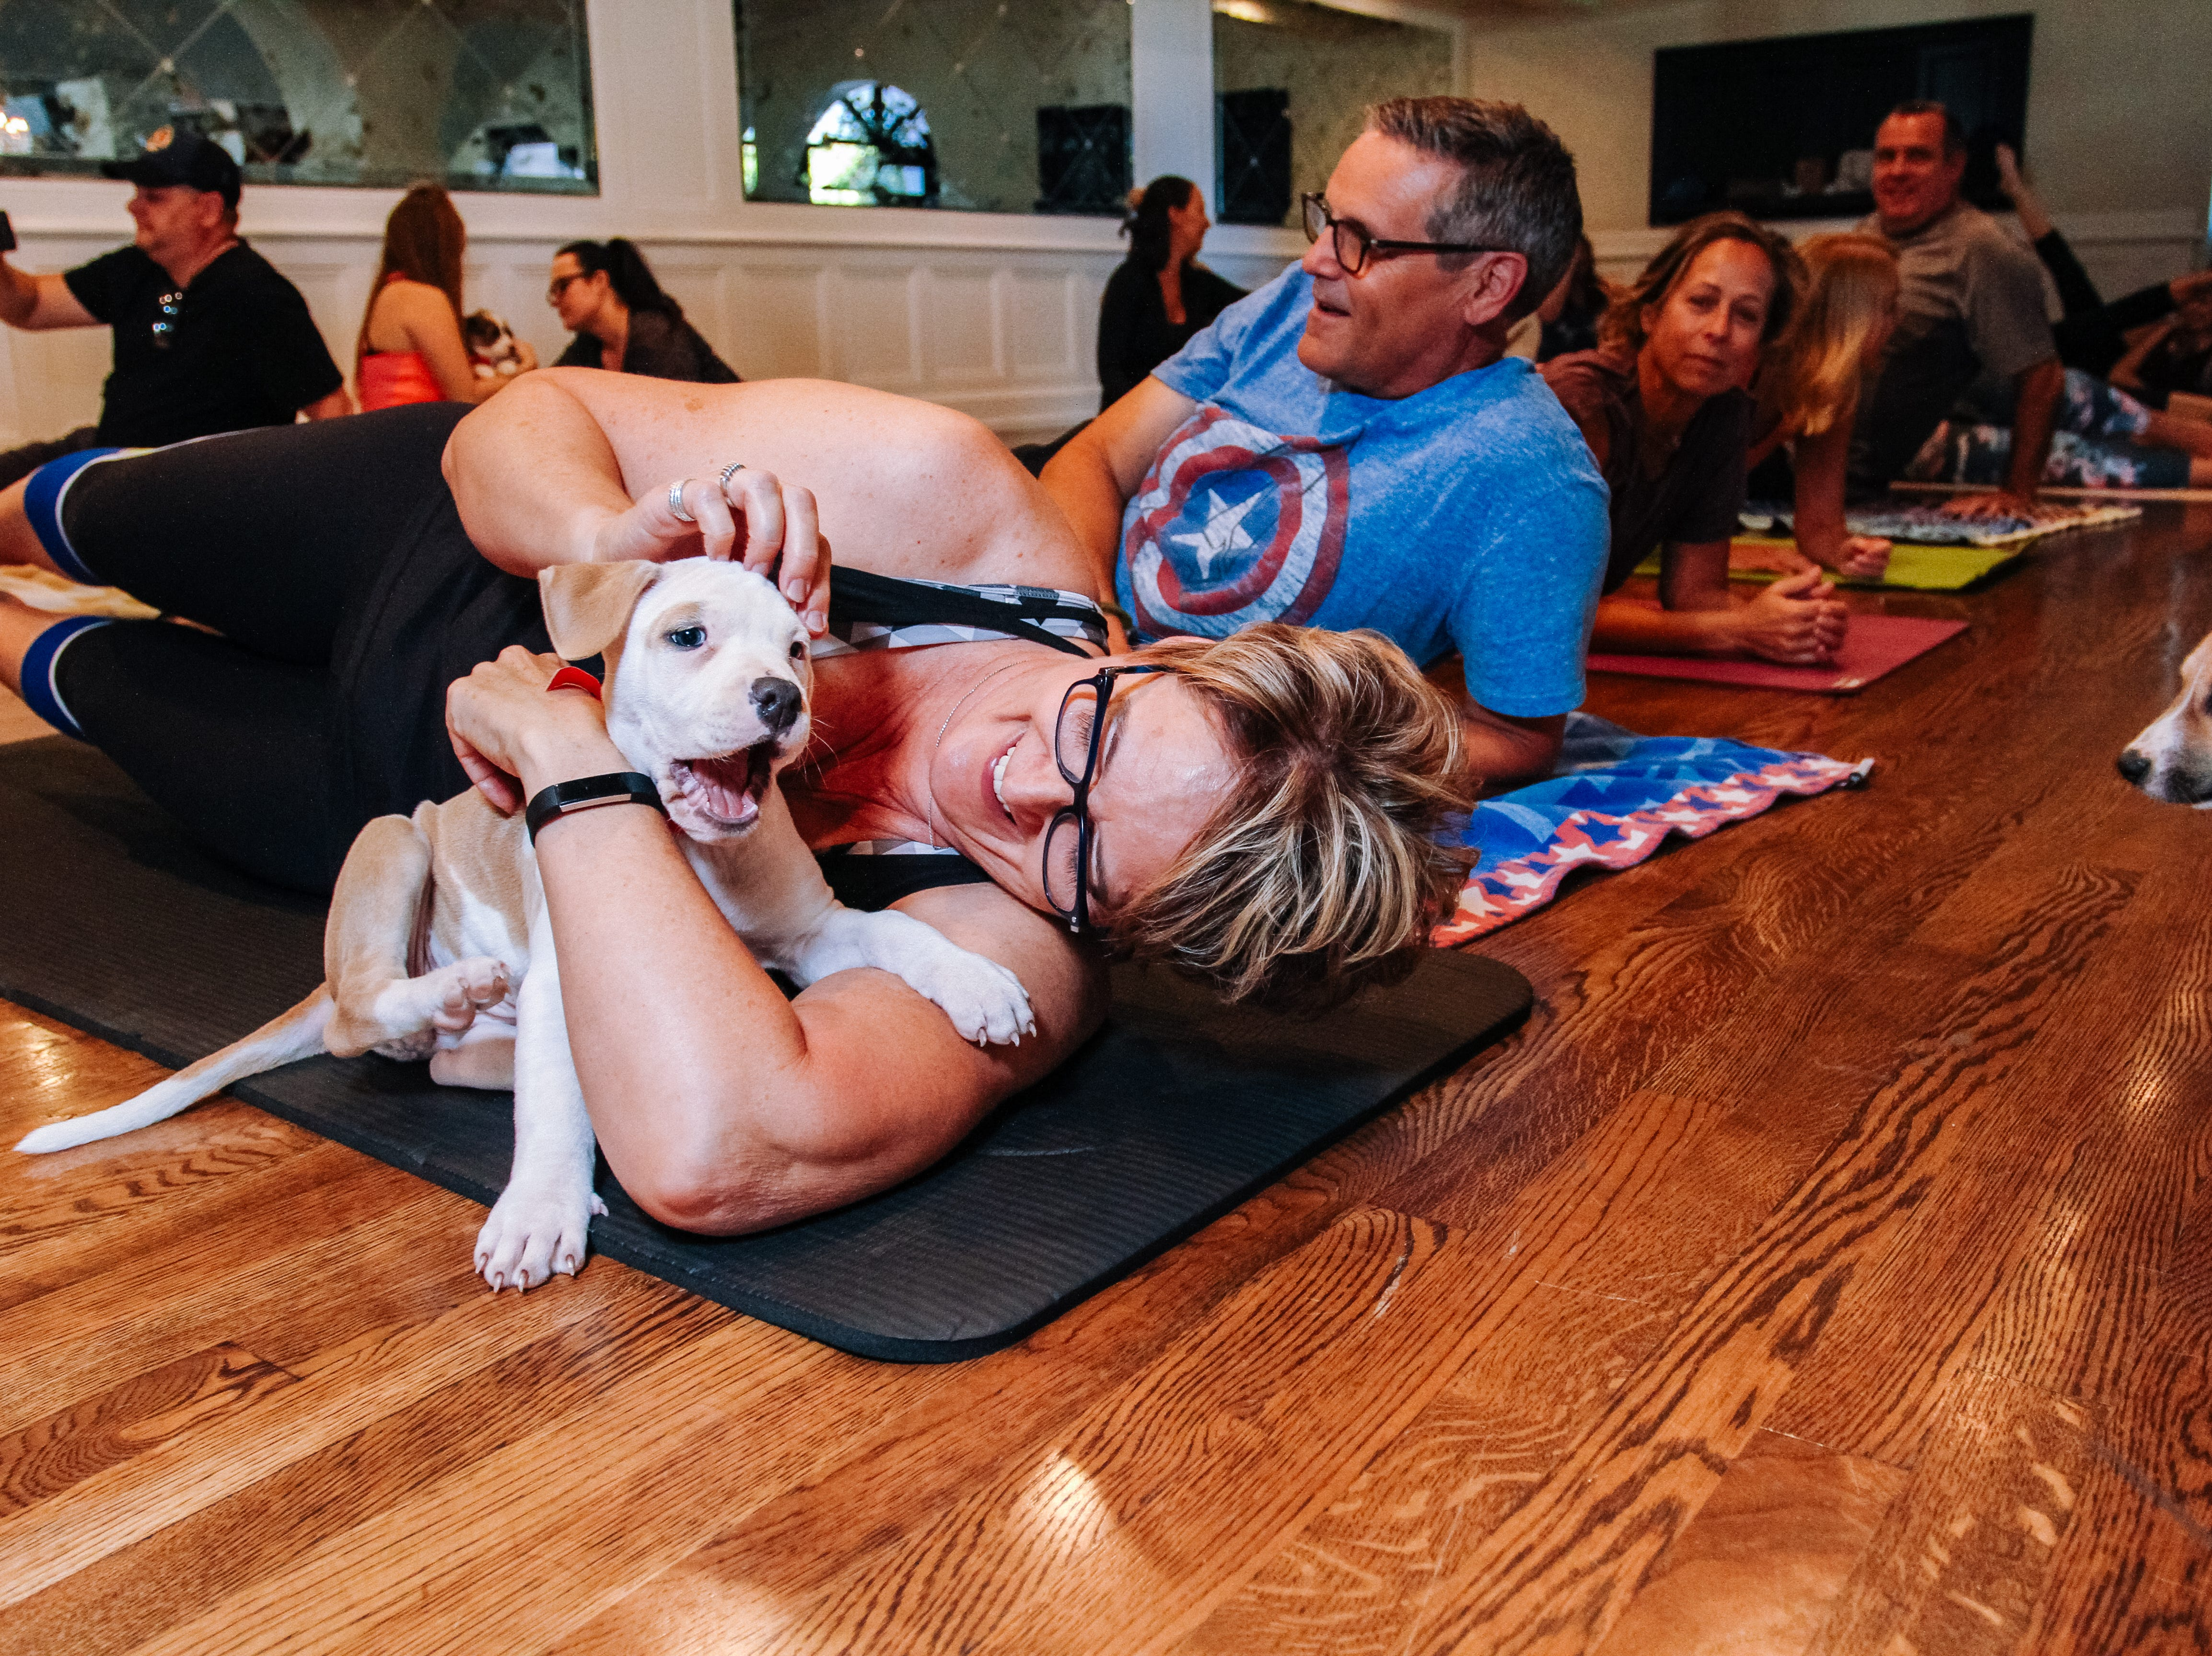 Lisa Akers plays with puppies at Puppies, Pilates and Prosecco, an event hosted by Almost There Foster Care at the Wrigley Mansion in Phoenix on April 13, 2019.